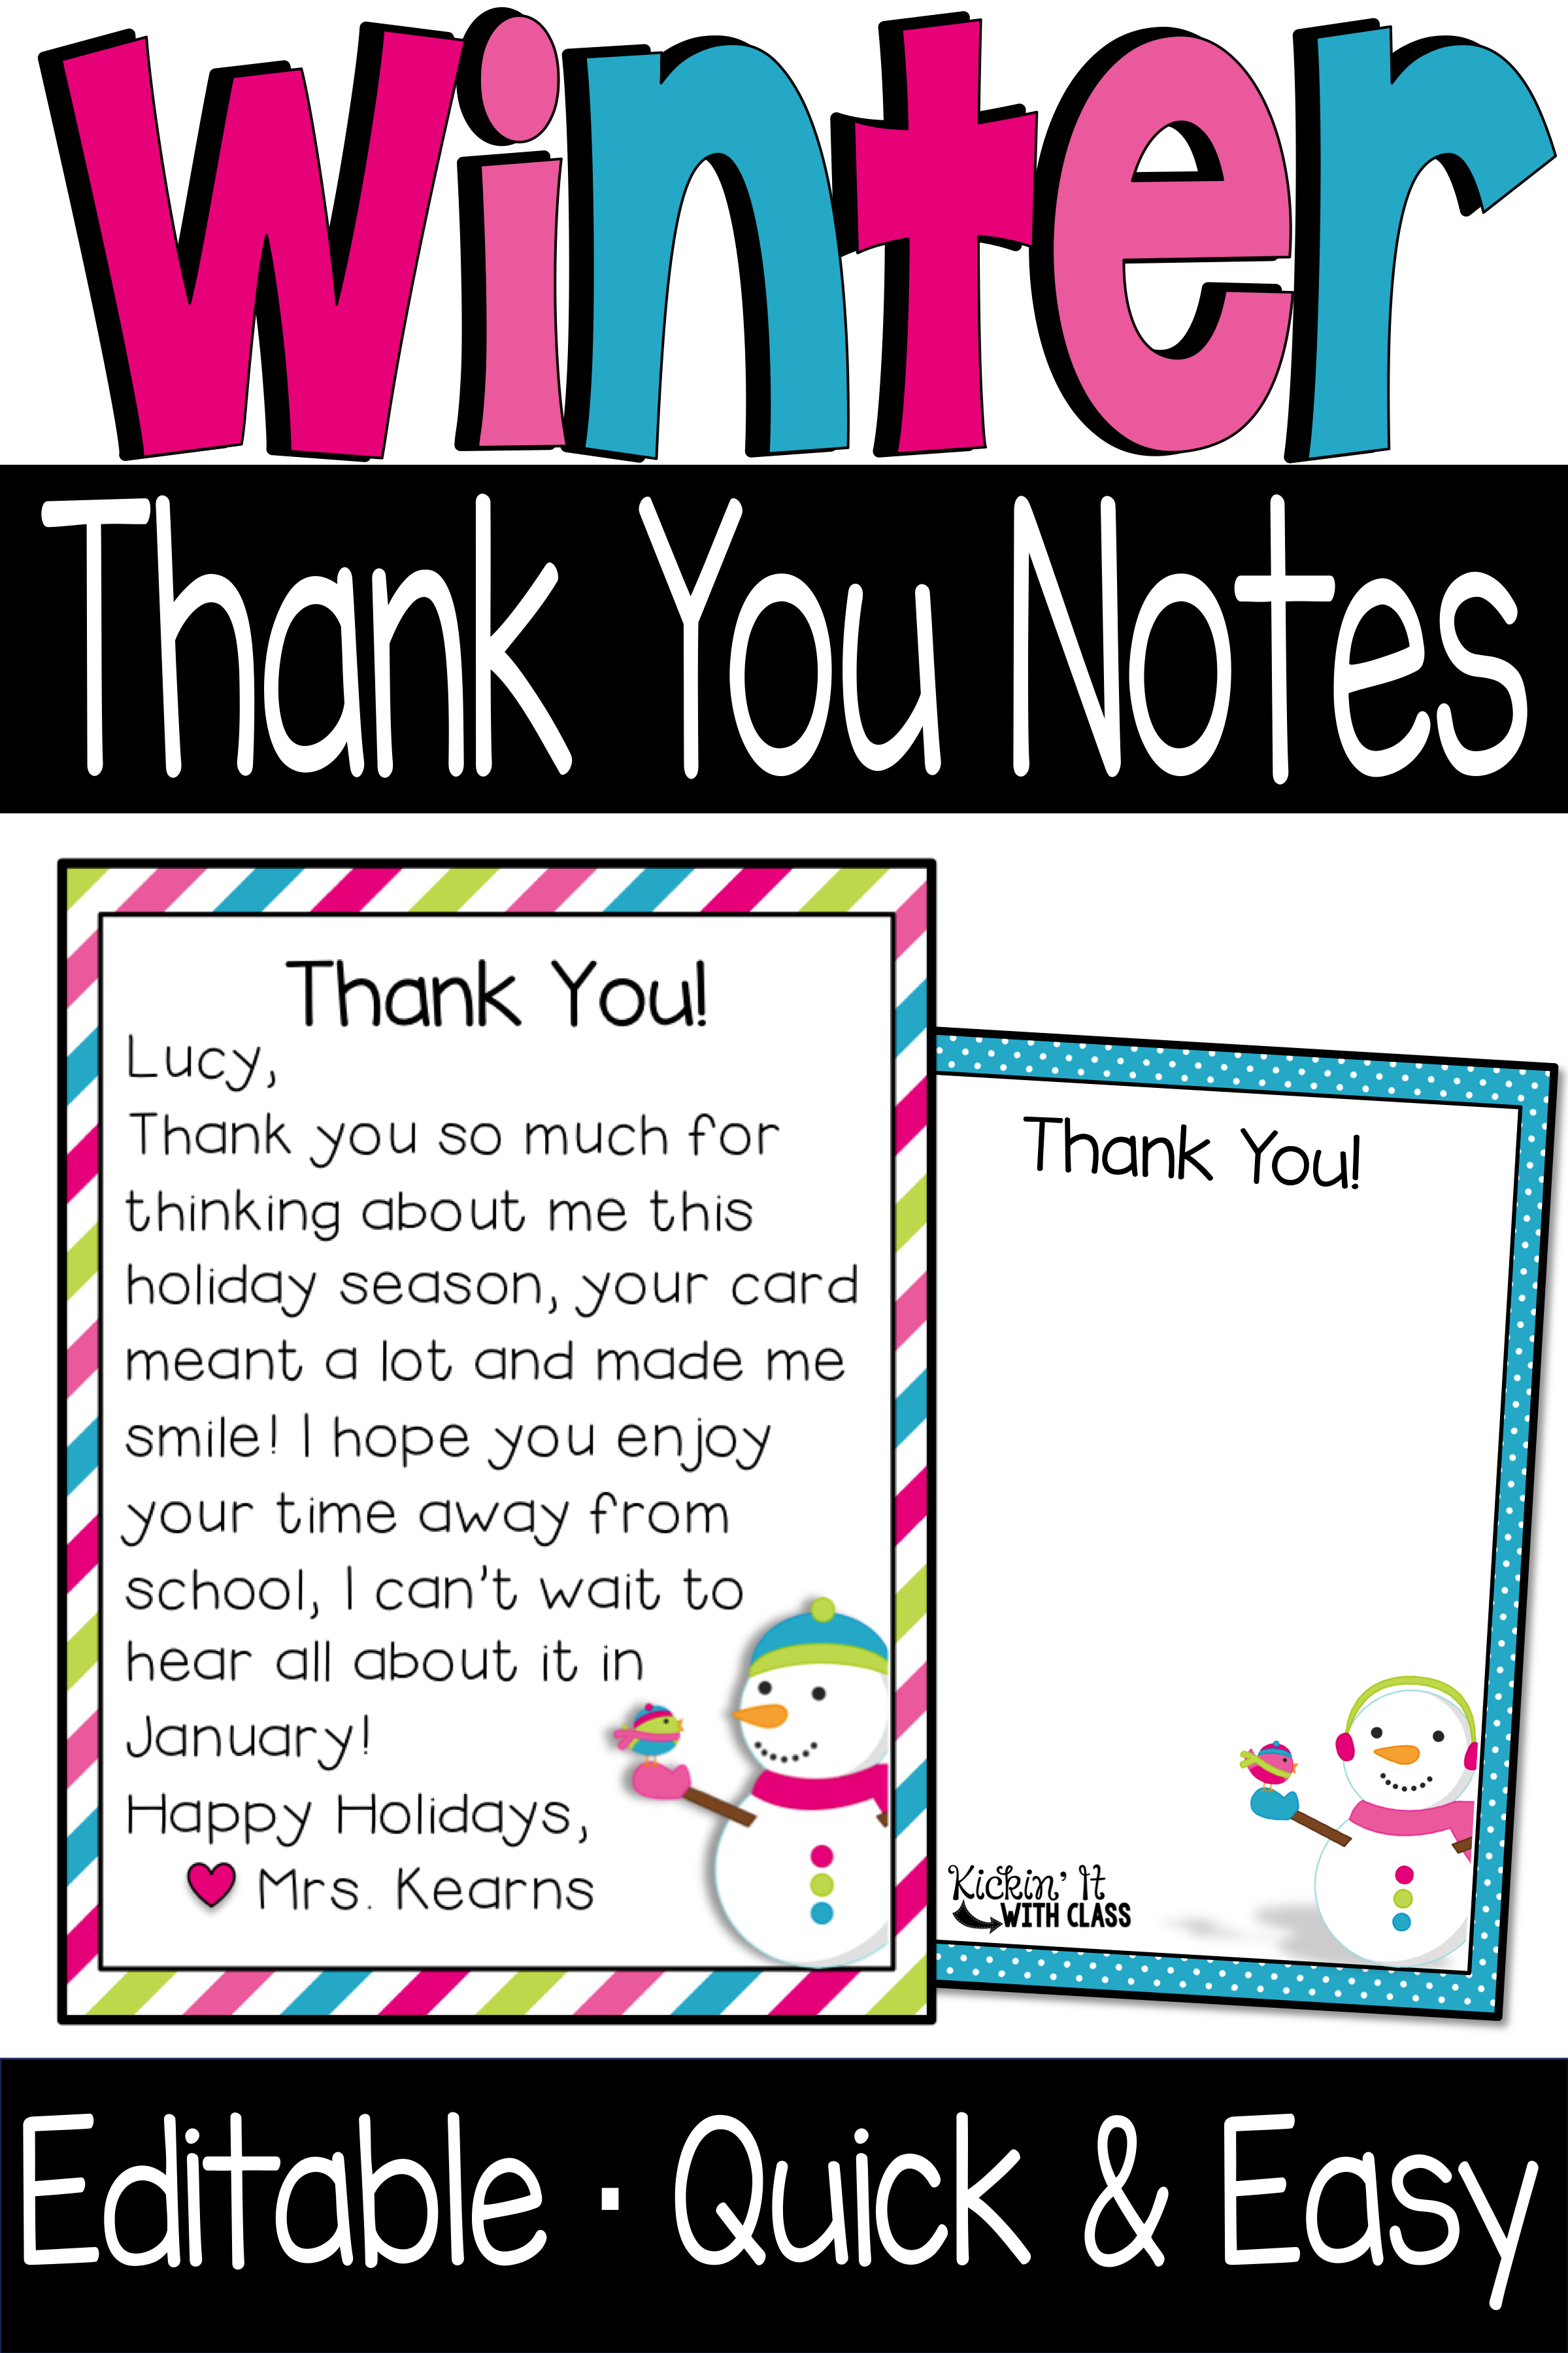 Winter Thank You Notes Heather Kearns Kickin It With